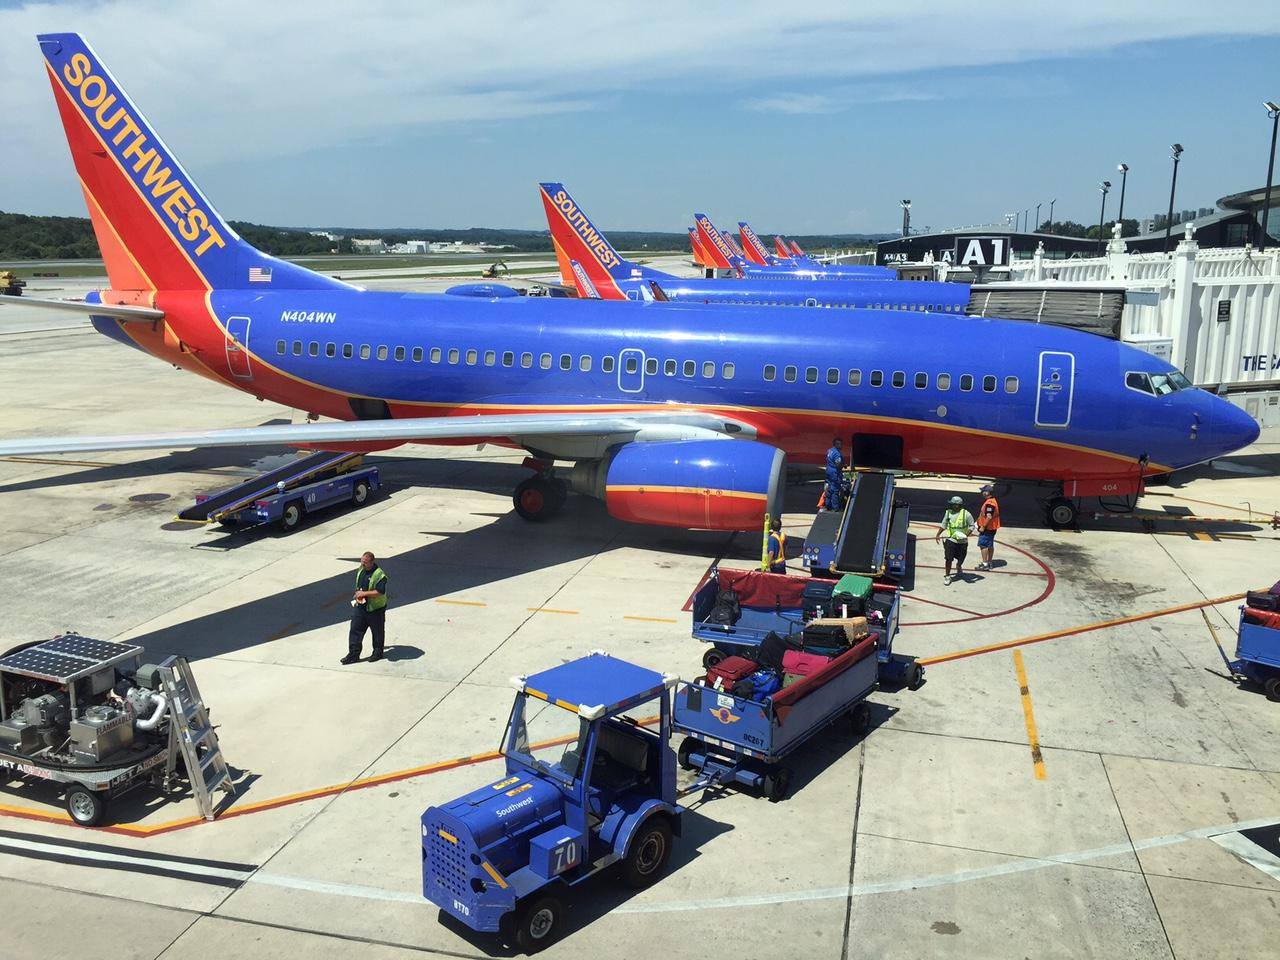 Southwest plane struck by pickup truck at Baltimore airport